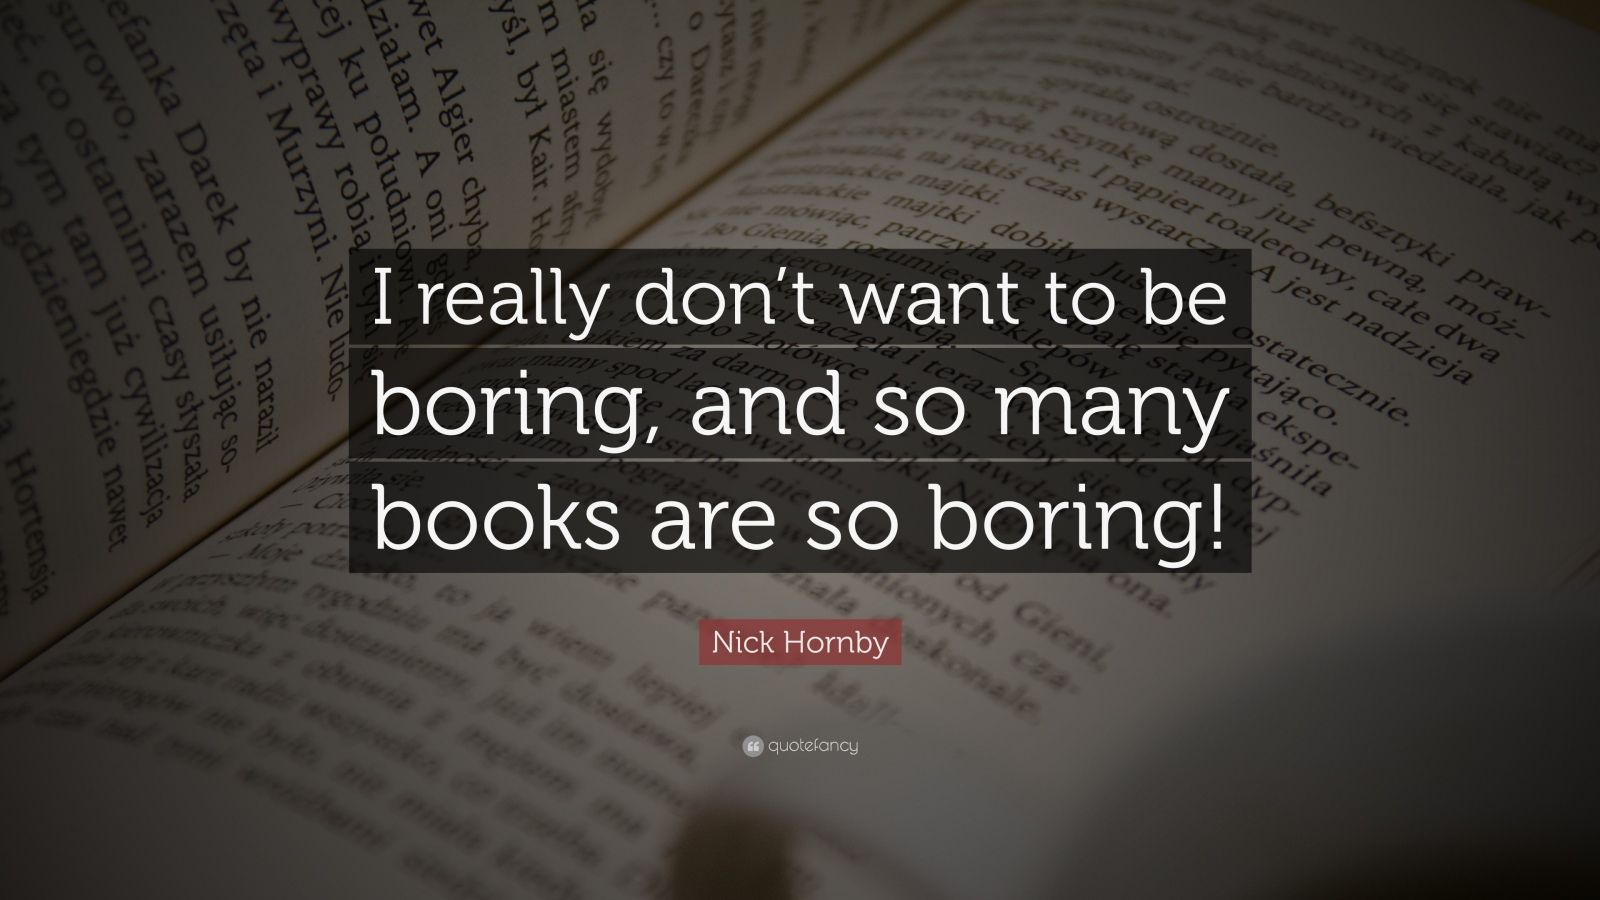 """Nick Hornby Quote: """"I really don't want to be boring, and so many books are so boring!"""""""